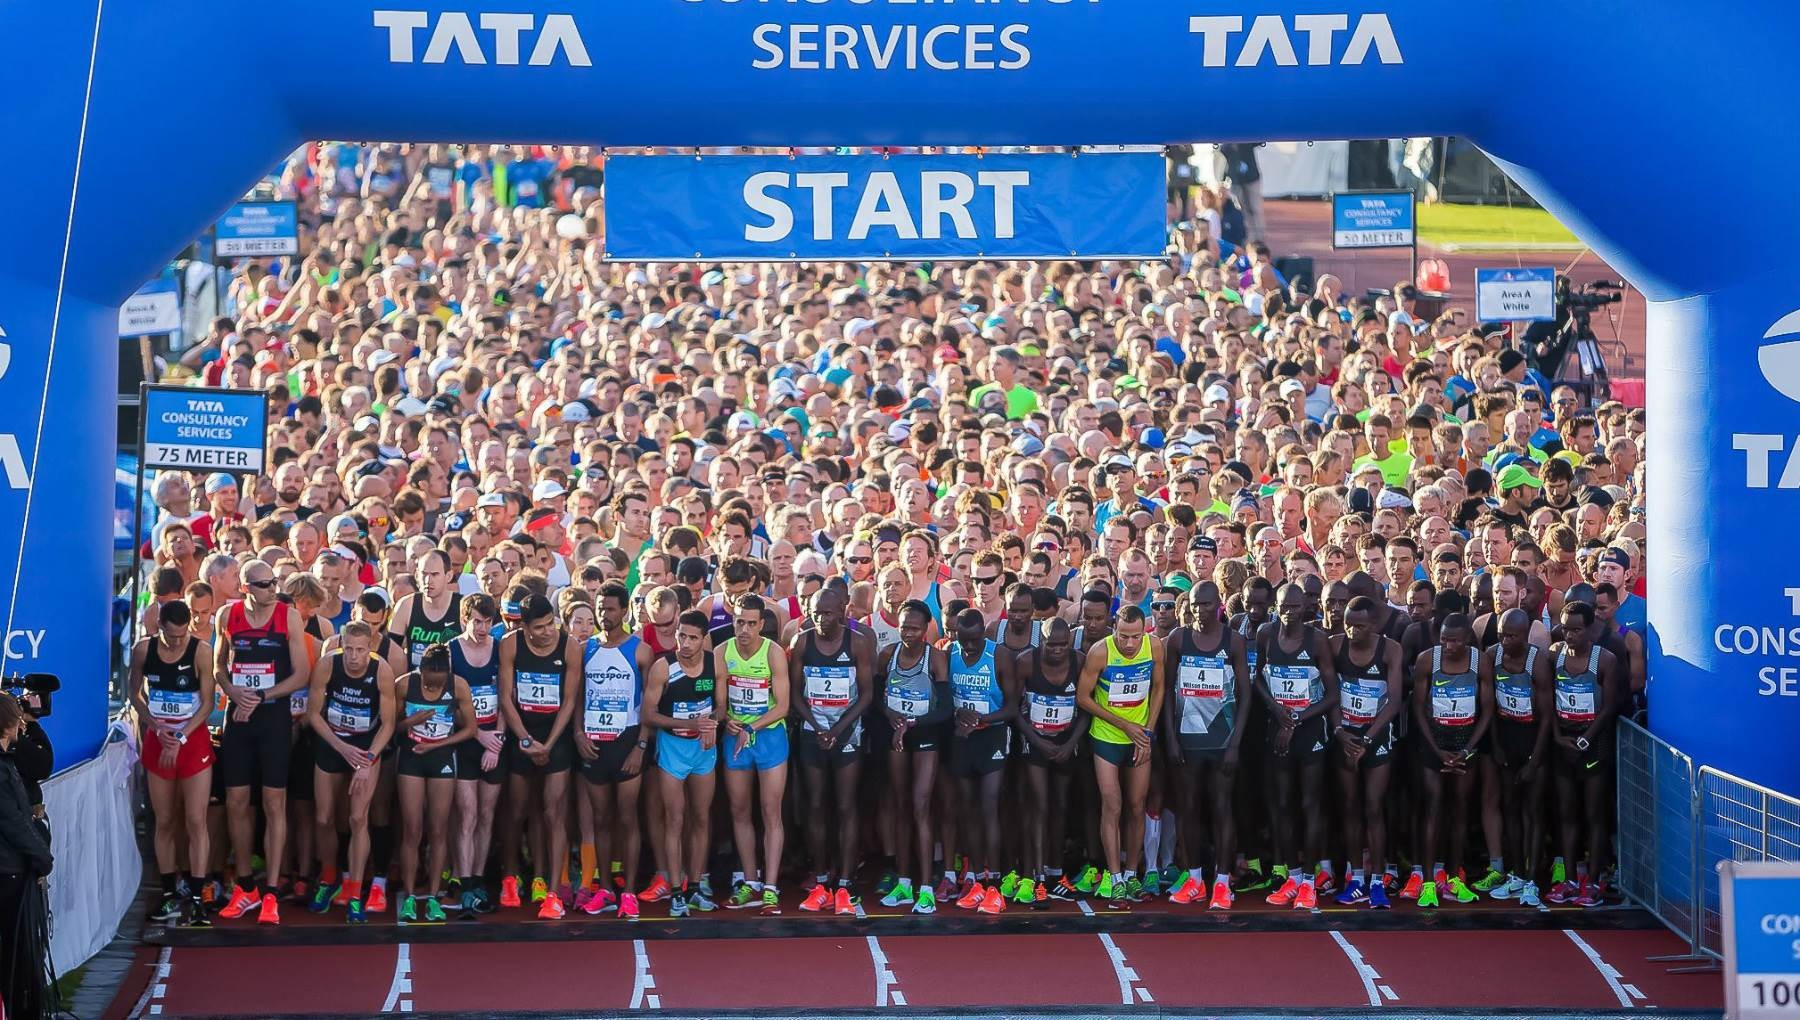 2020 Amsterdam Marathon has been cancelled due to the pandemic